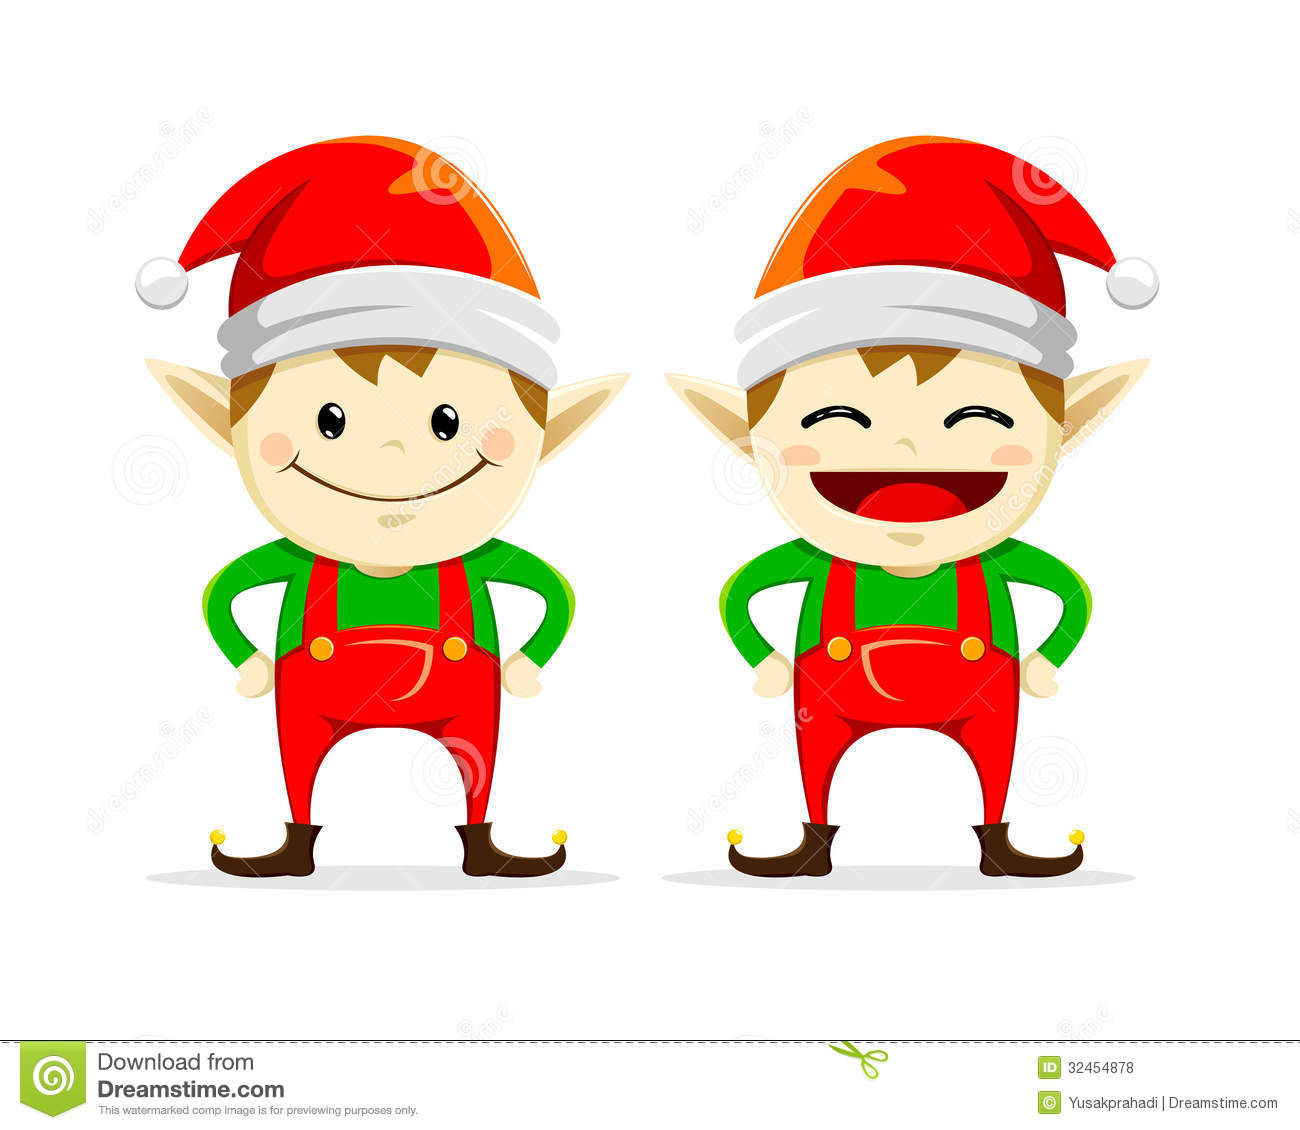 Christmas Elf Twin Royalty Free Stock Photos - Image: 32454878